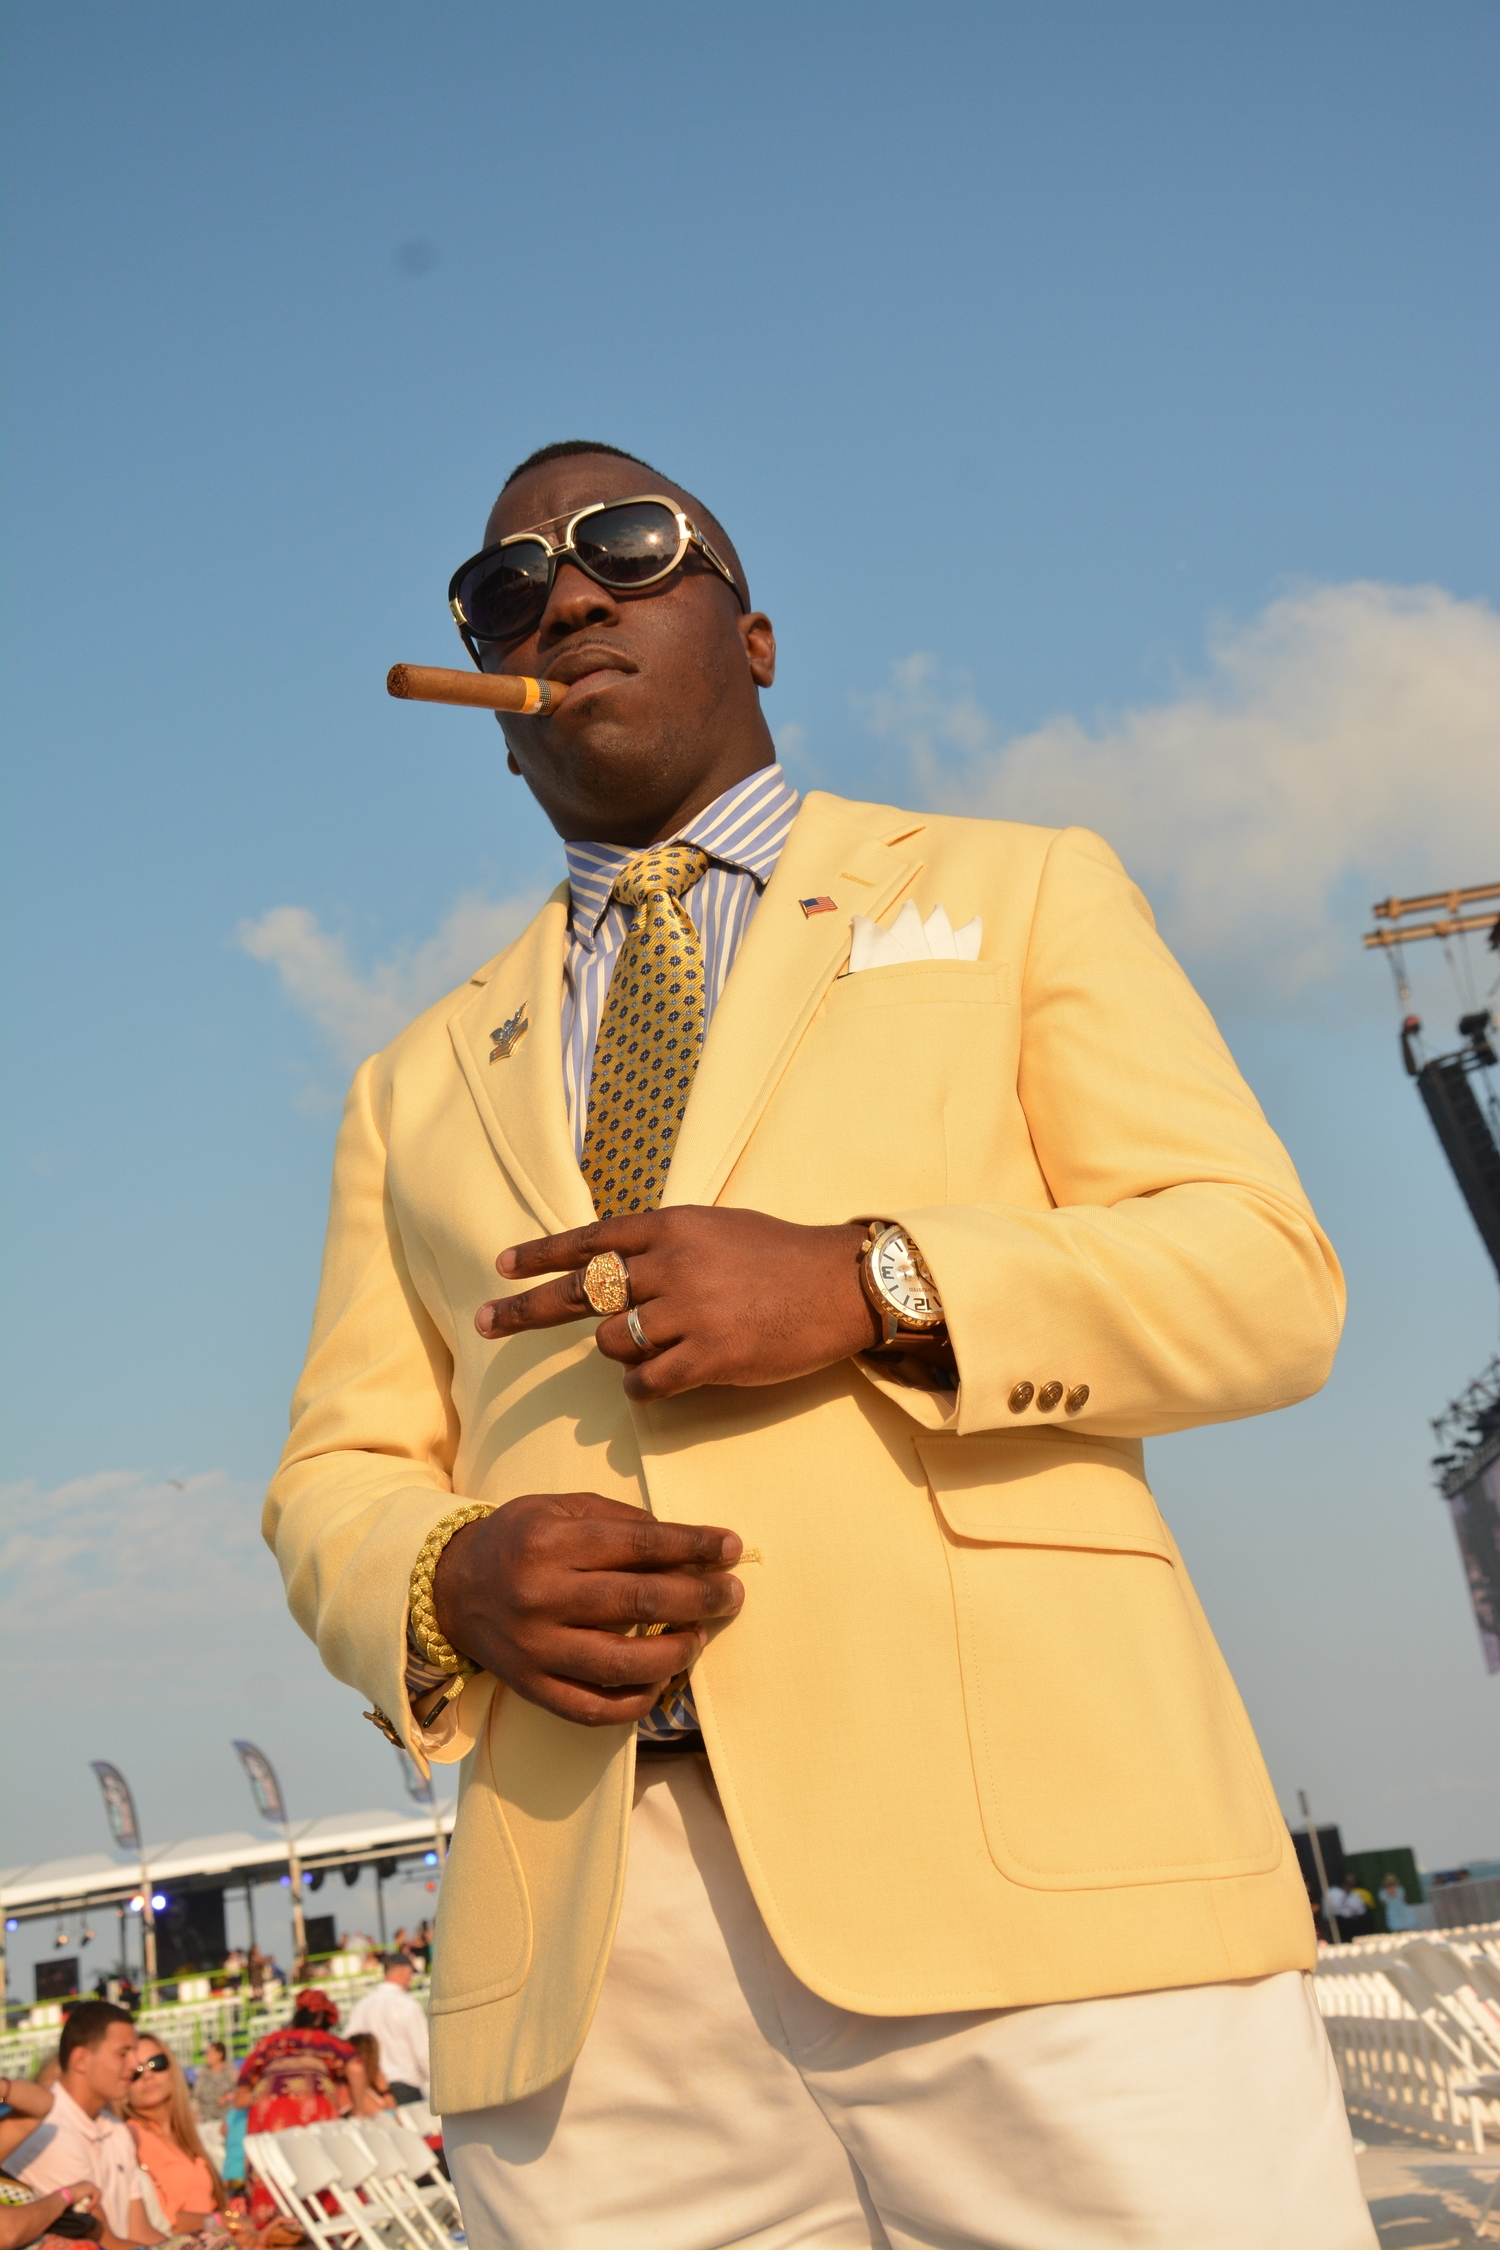 Mike GQ, in uniform complete with Cohiba,gets my vote for best dressed at the concert